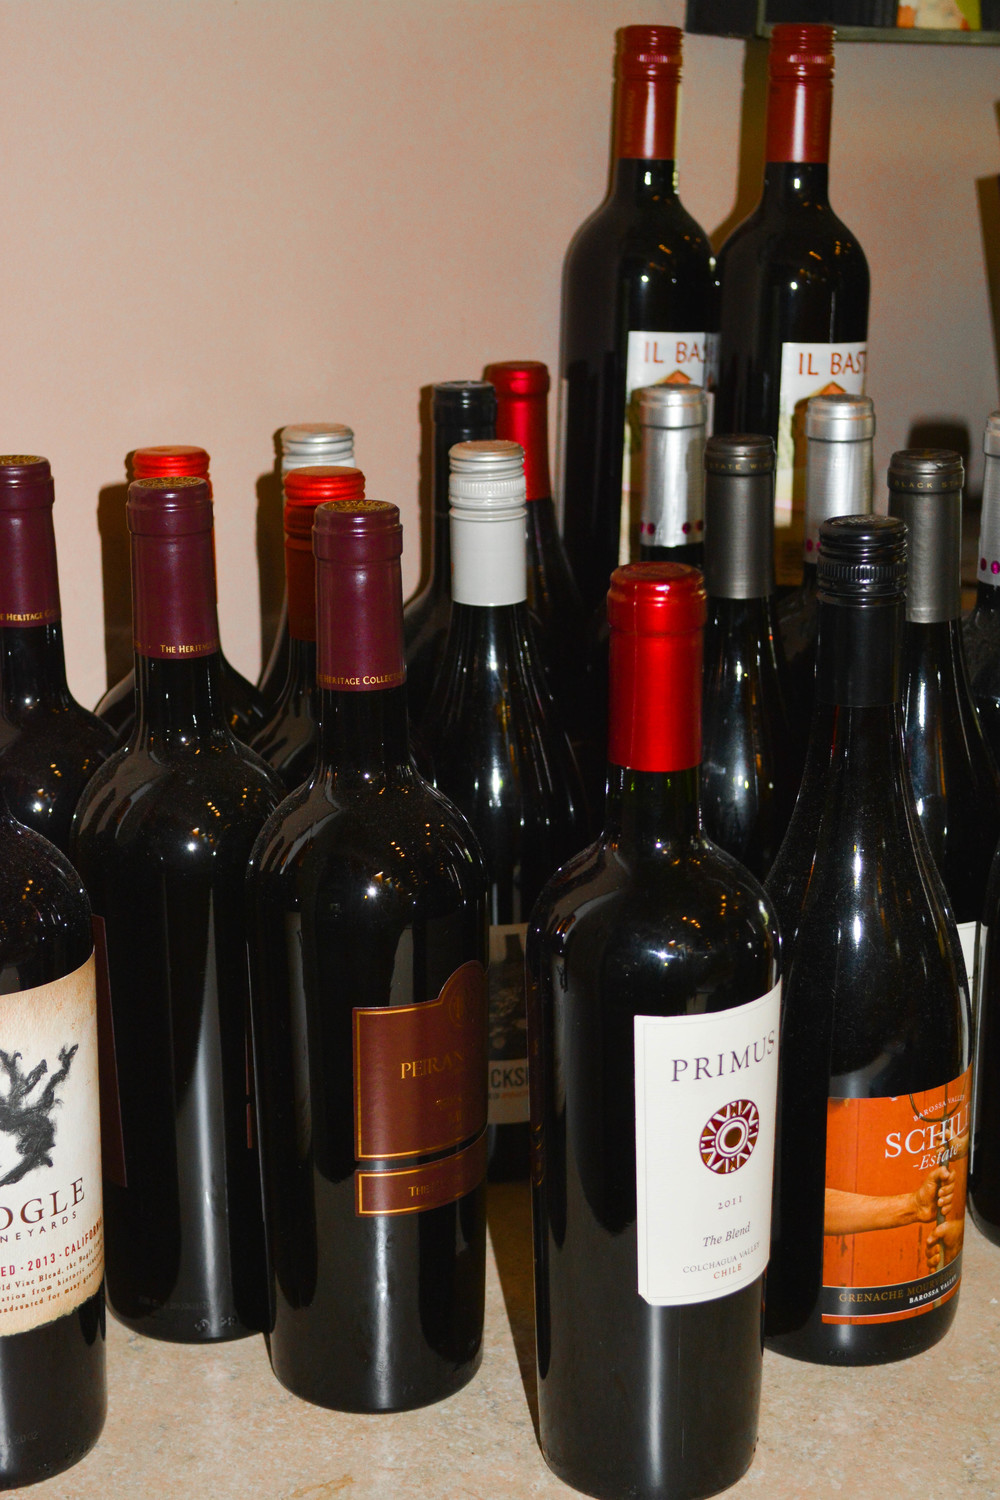 For our wine drinkers:  We've got a quality selection for you too